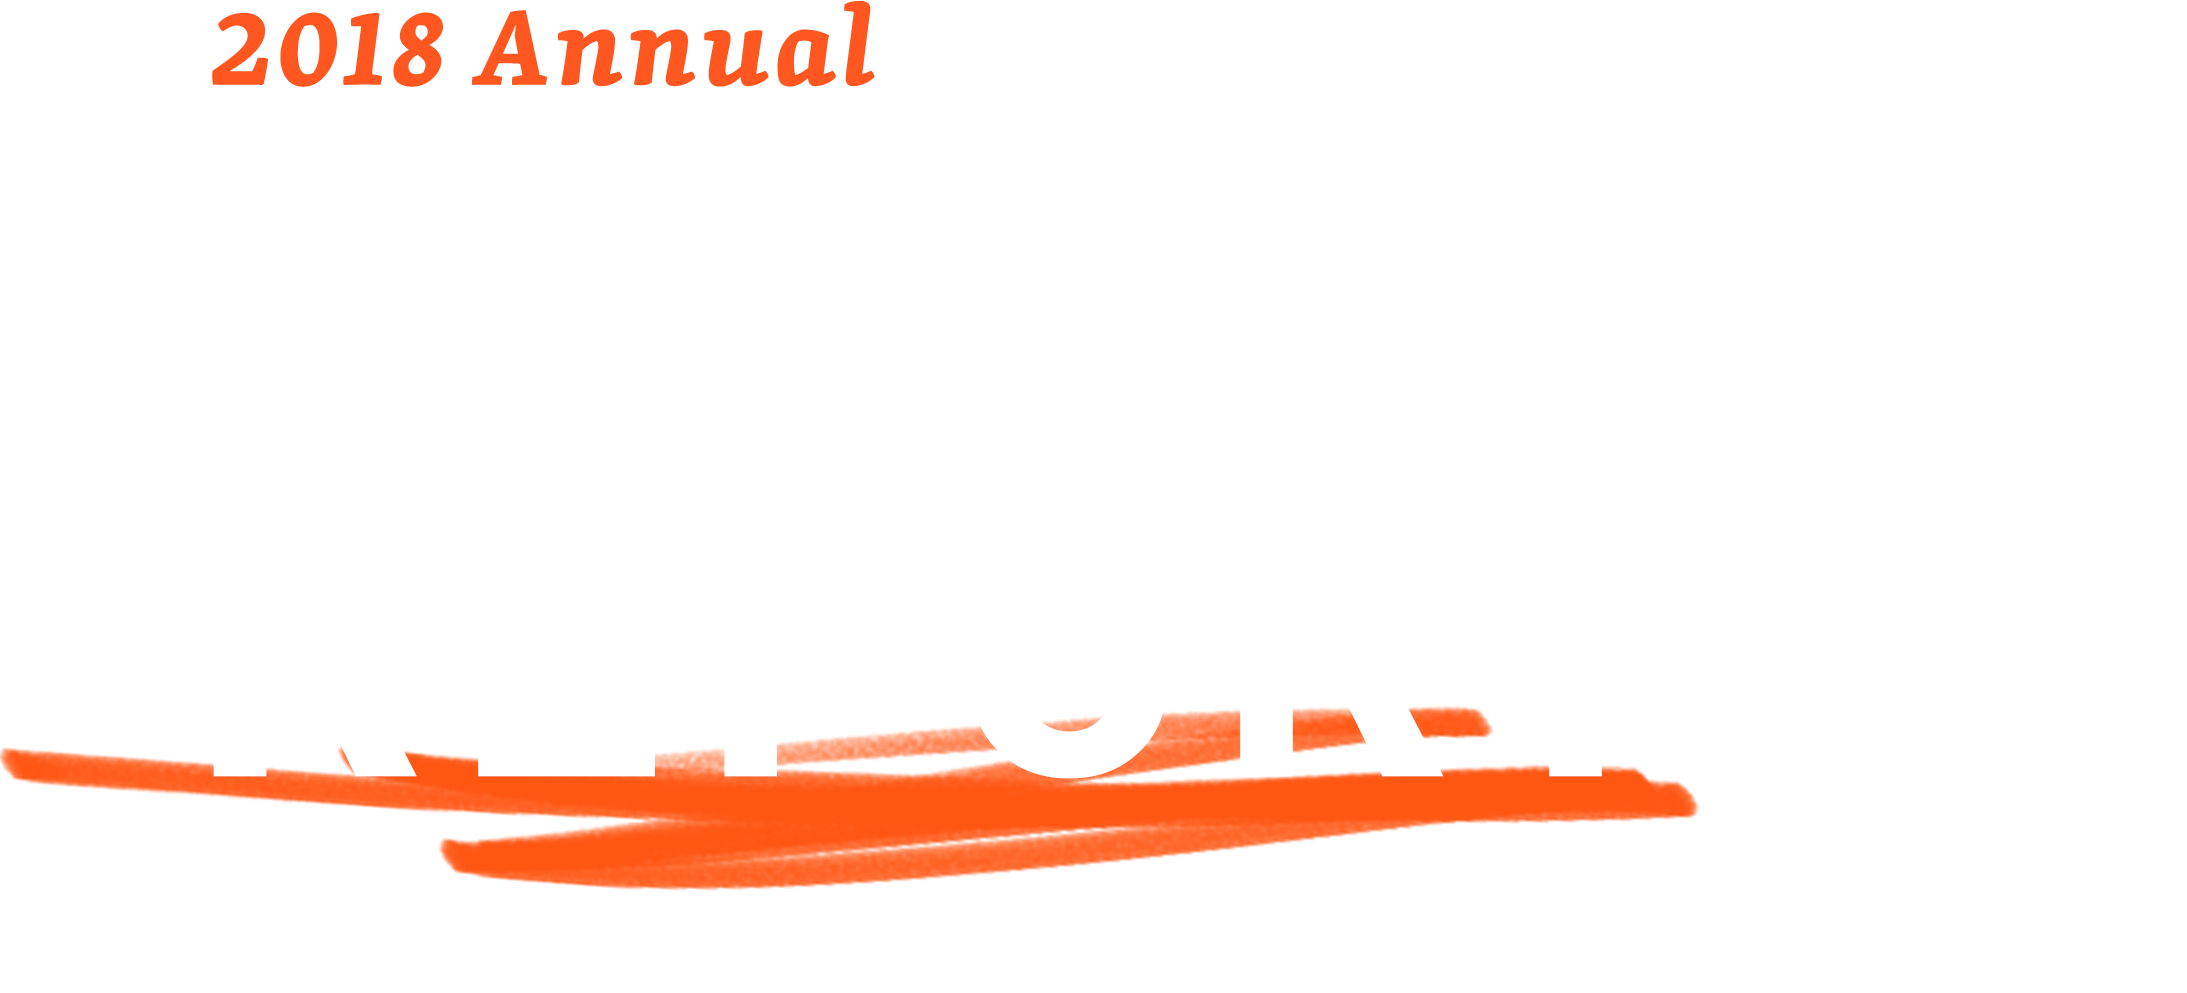 A21 2018 Annual Freedom Report